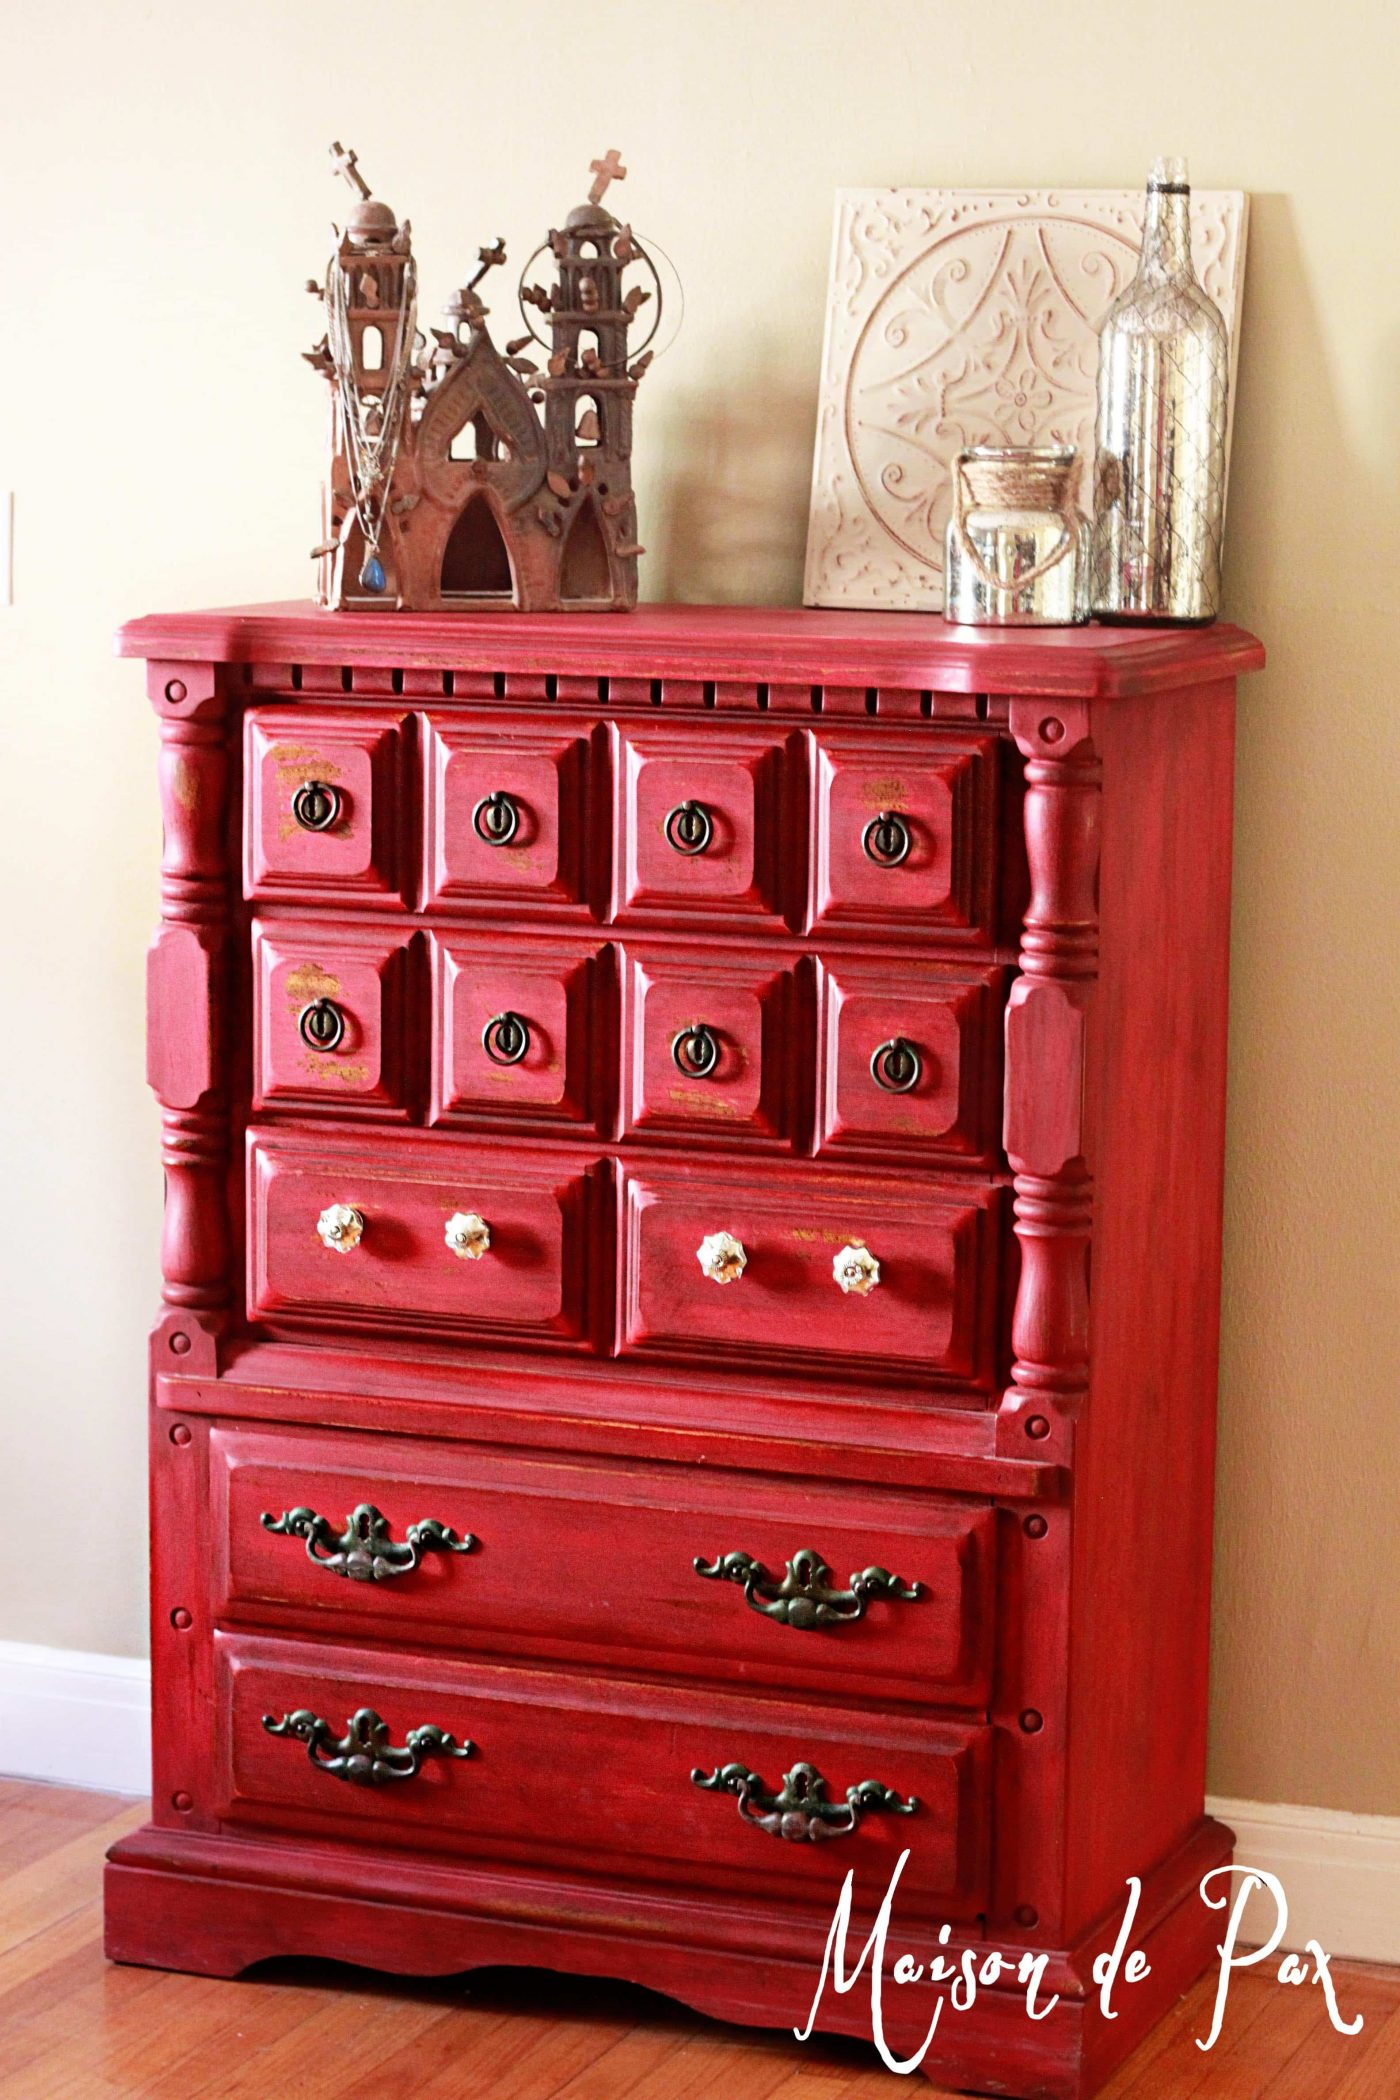 Full tutorial on creating this gorgeous, vibrant yet vintage look with milk paint at maisondepax.com